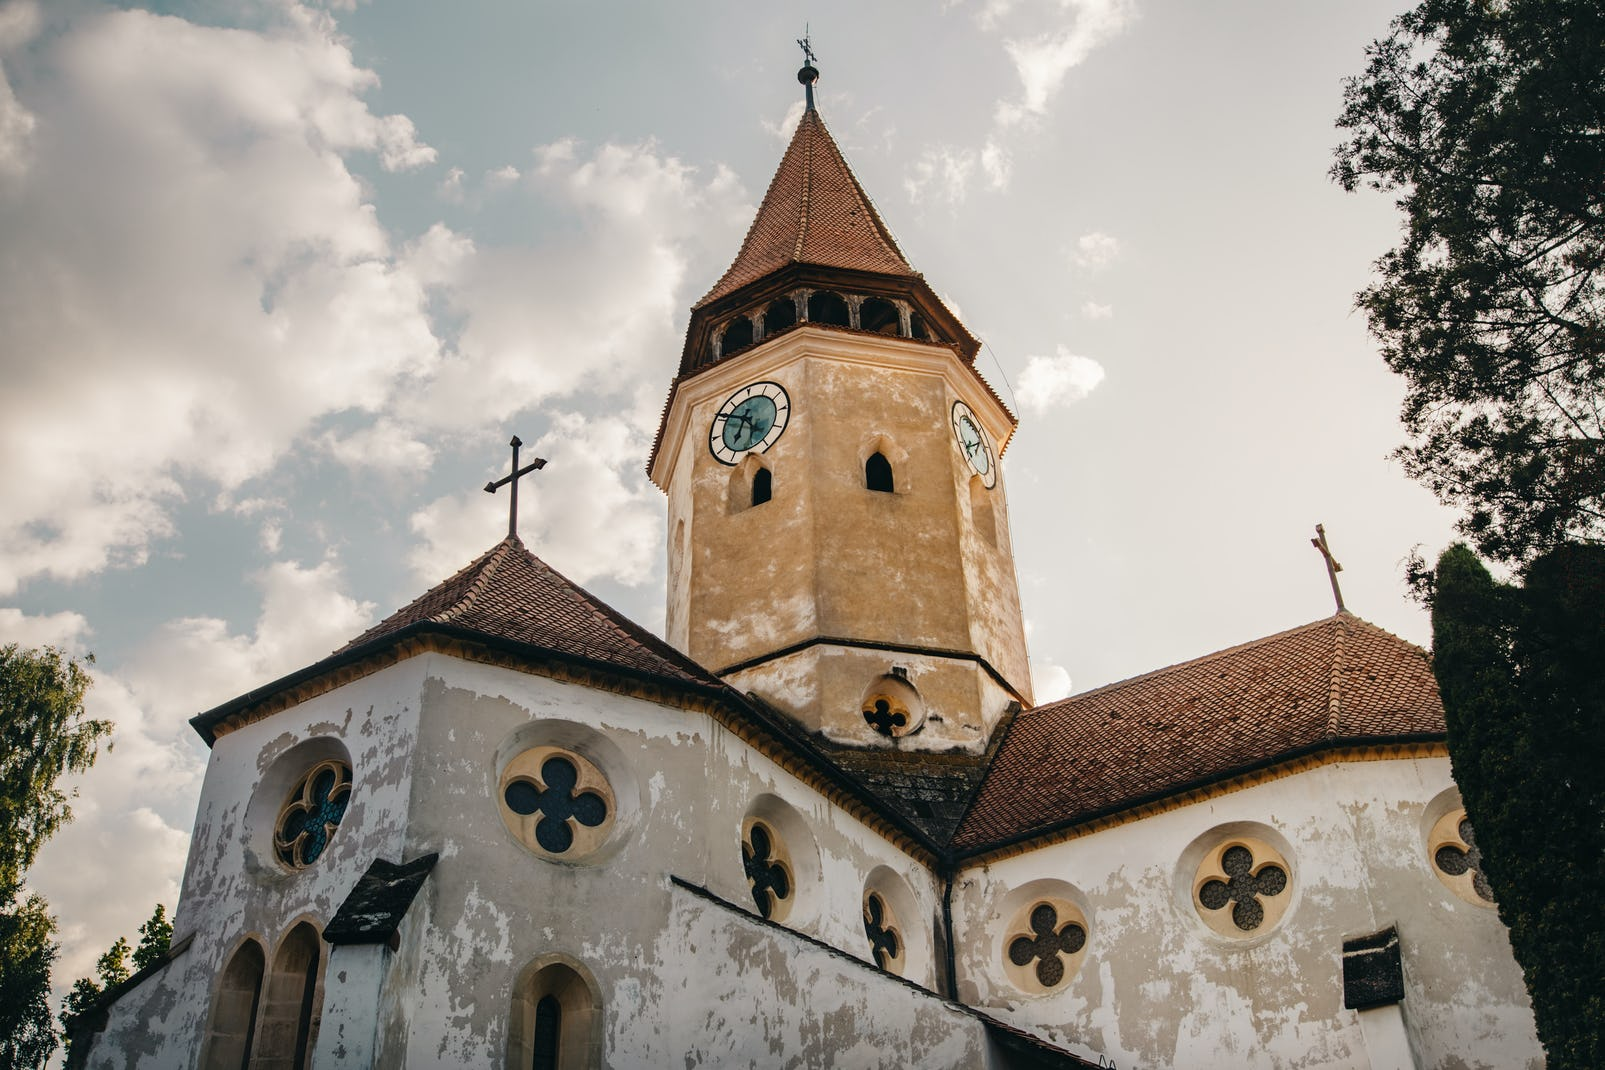 Old fortified church from Transylvania